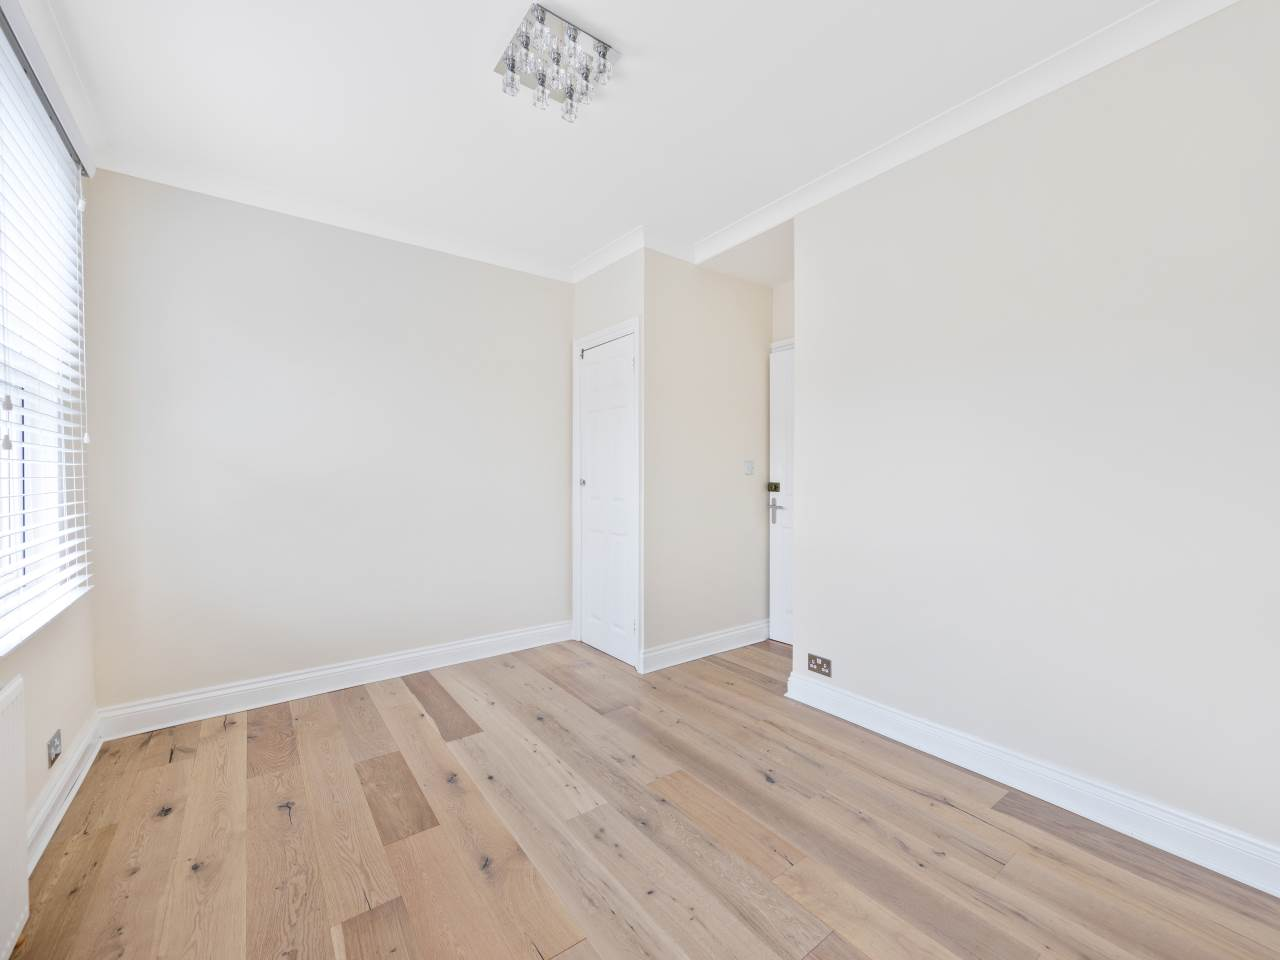 3 bed house for sale in Exning Road , Canning Town  8